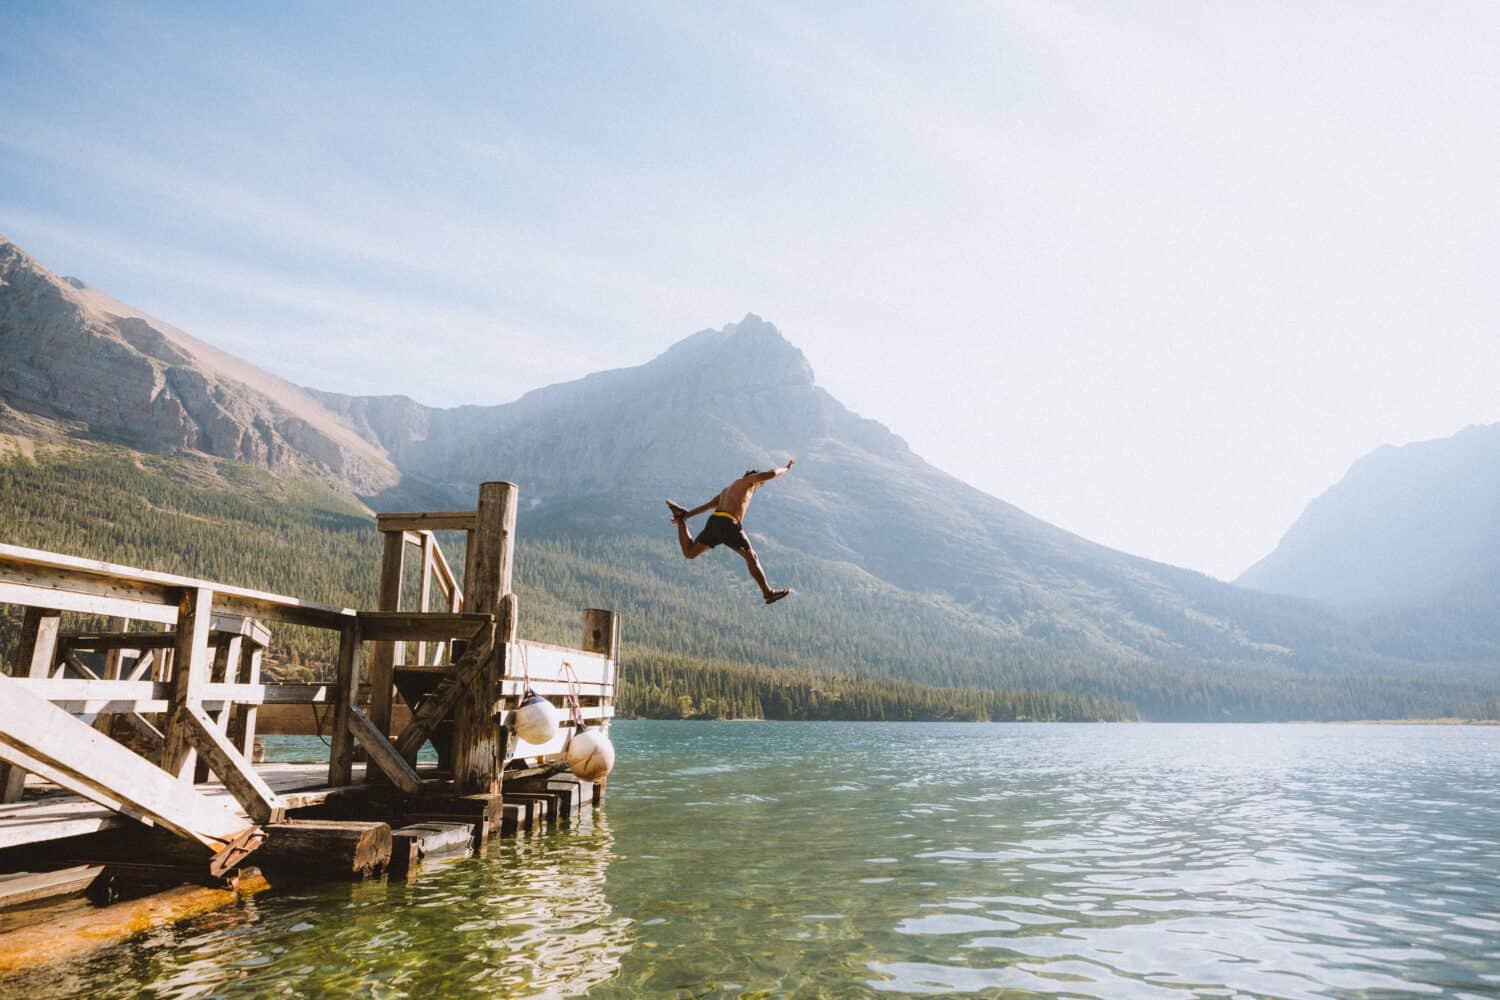 Berty Mandagie jumping into St Mary Lake, Glacier National Park